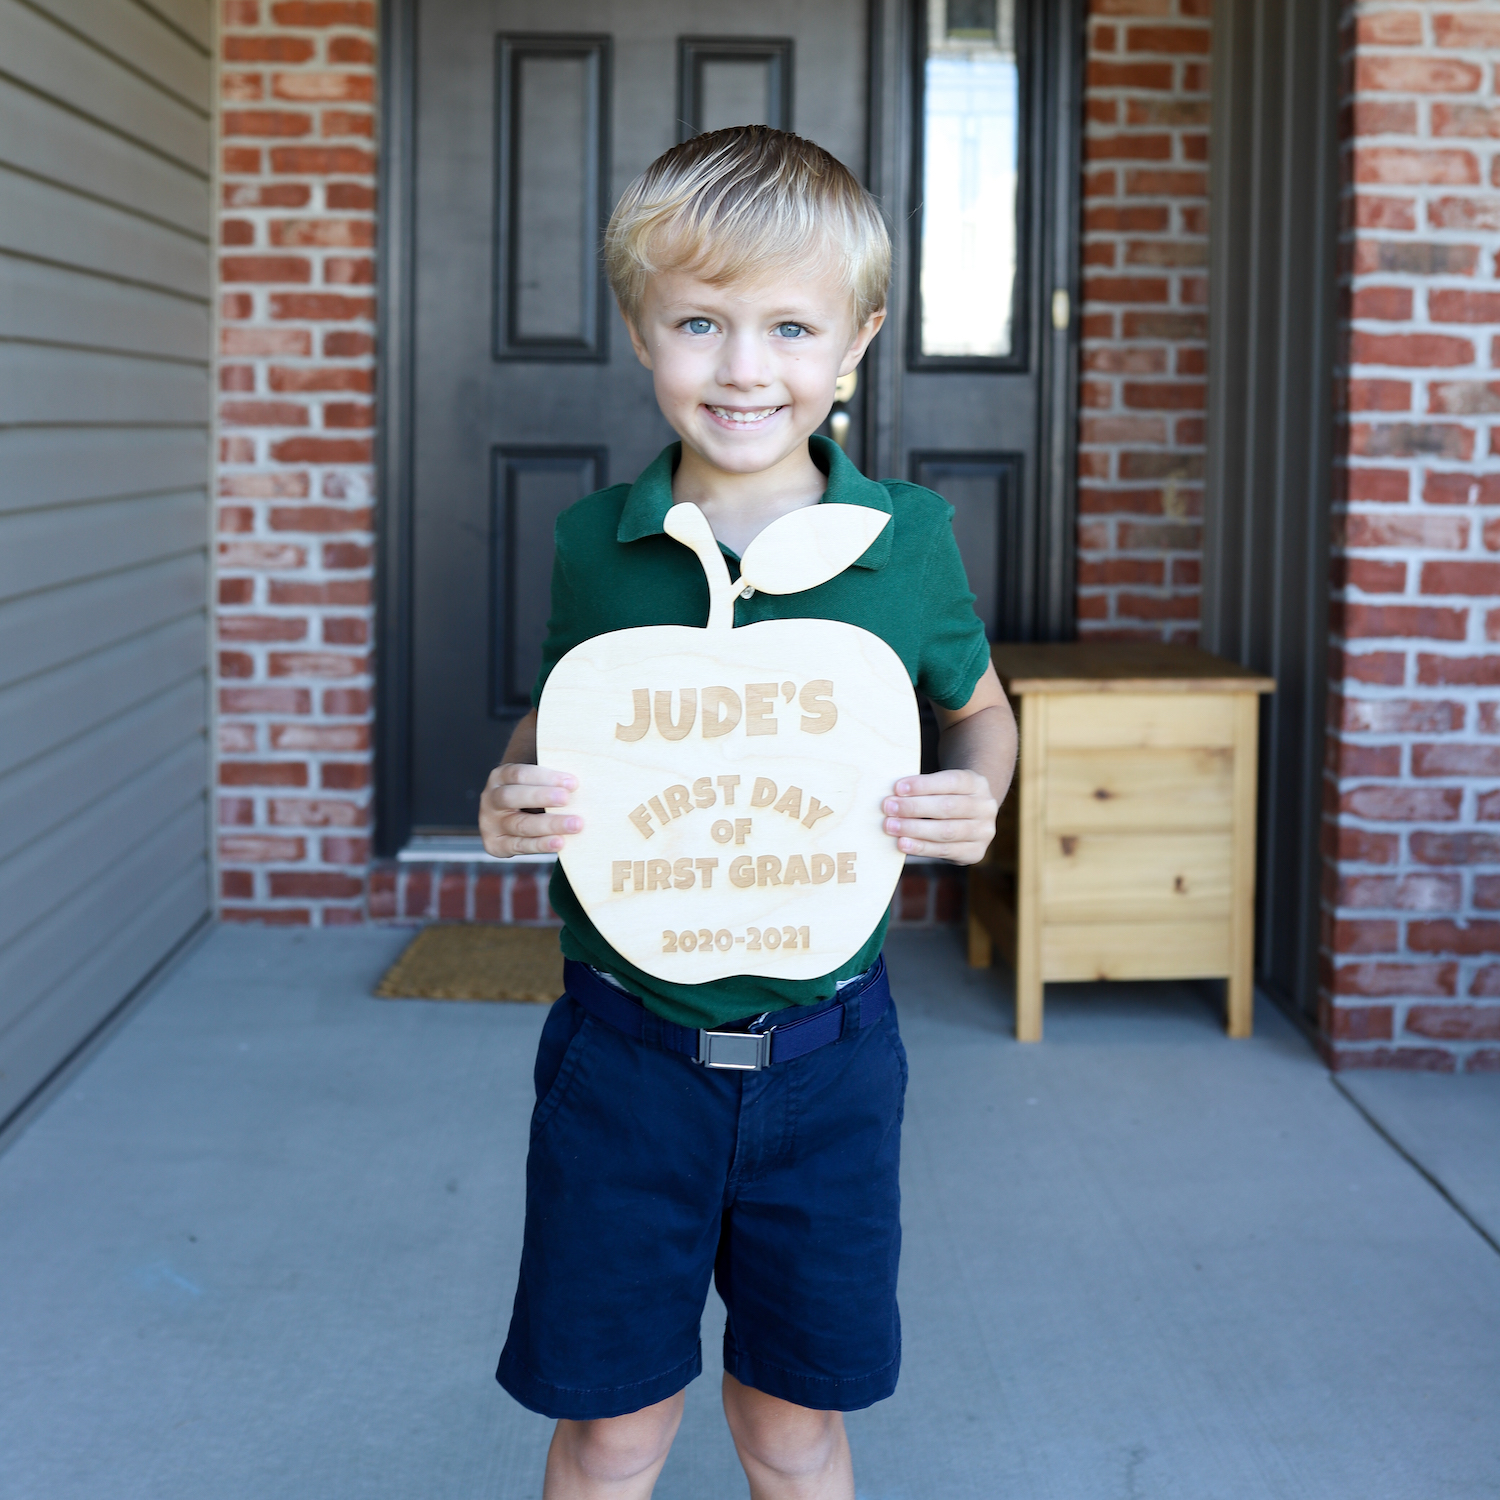 Get To Know The Teacher Free Printable - Teacher gift ideas for the first day of school!